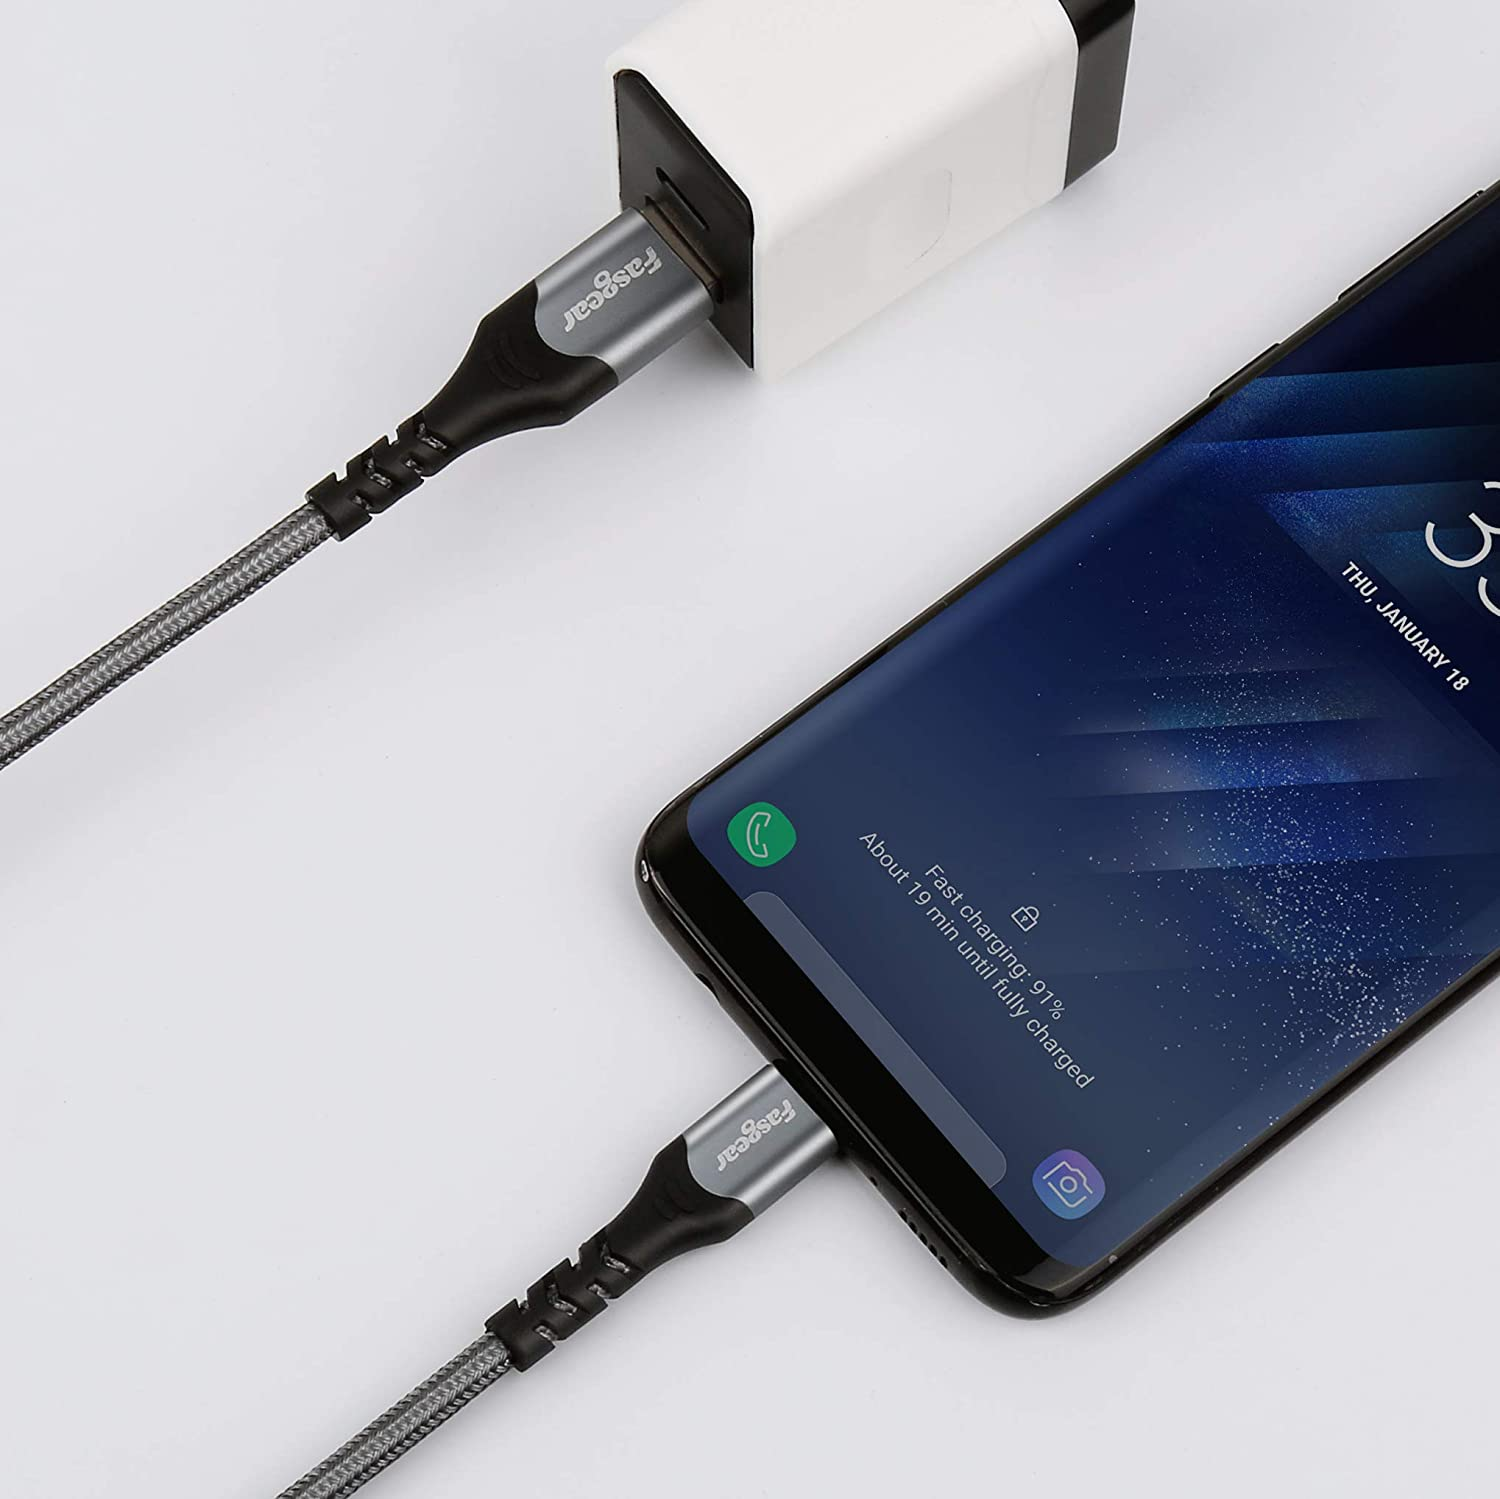 Fasgear USB C Cable 3 Pack 3ft+6ft+10ft Nylon Braided USB Type C Fast Charging Sync Cable Compatible with Moto G6 G7 Galaxy S10 S9 S8 S8 Gray Note 9 Oneplus 7 7pro Sony Xperia XZ Huawei P30 P20